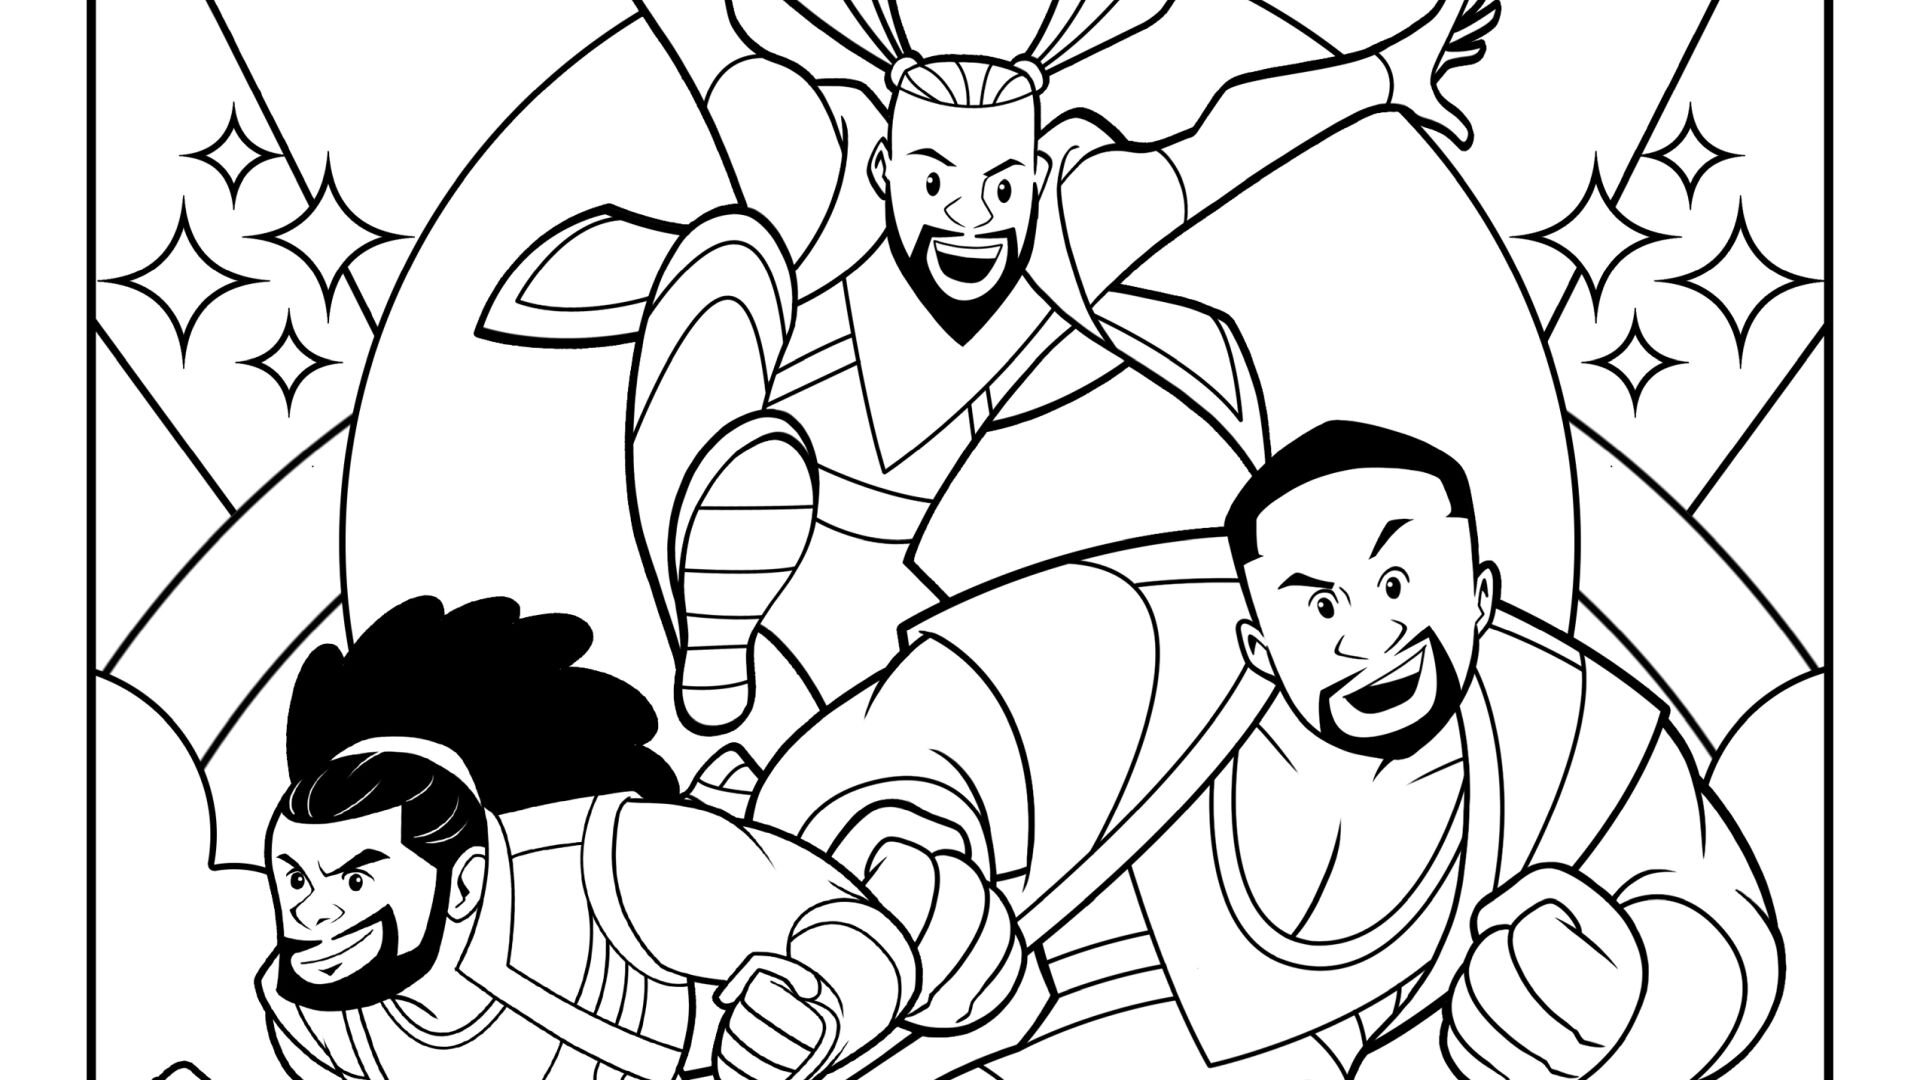 42 Best wwe coloring pages images   Wwe coloring pages, Coloring ...   1080x1920